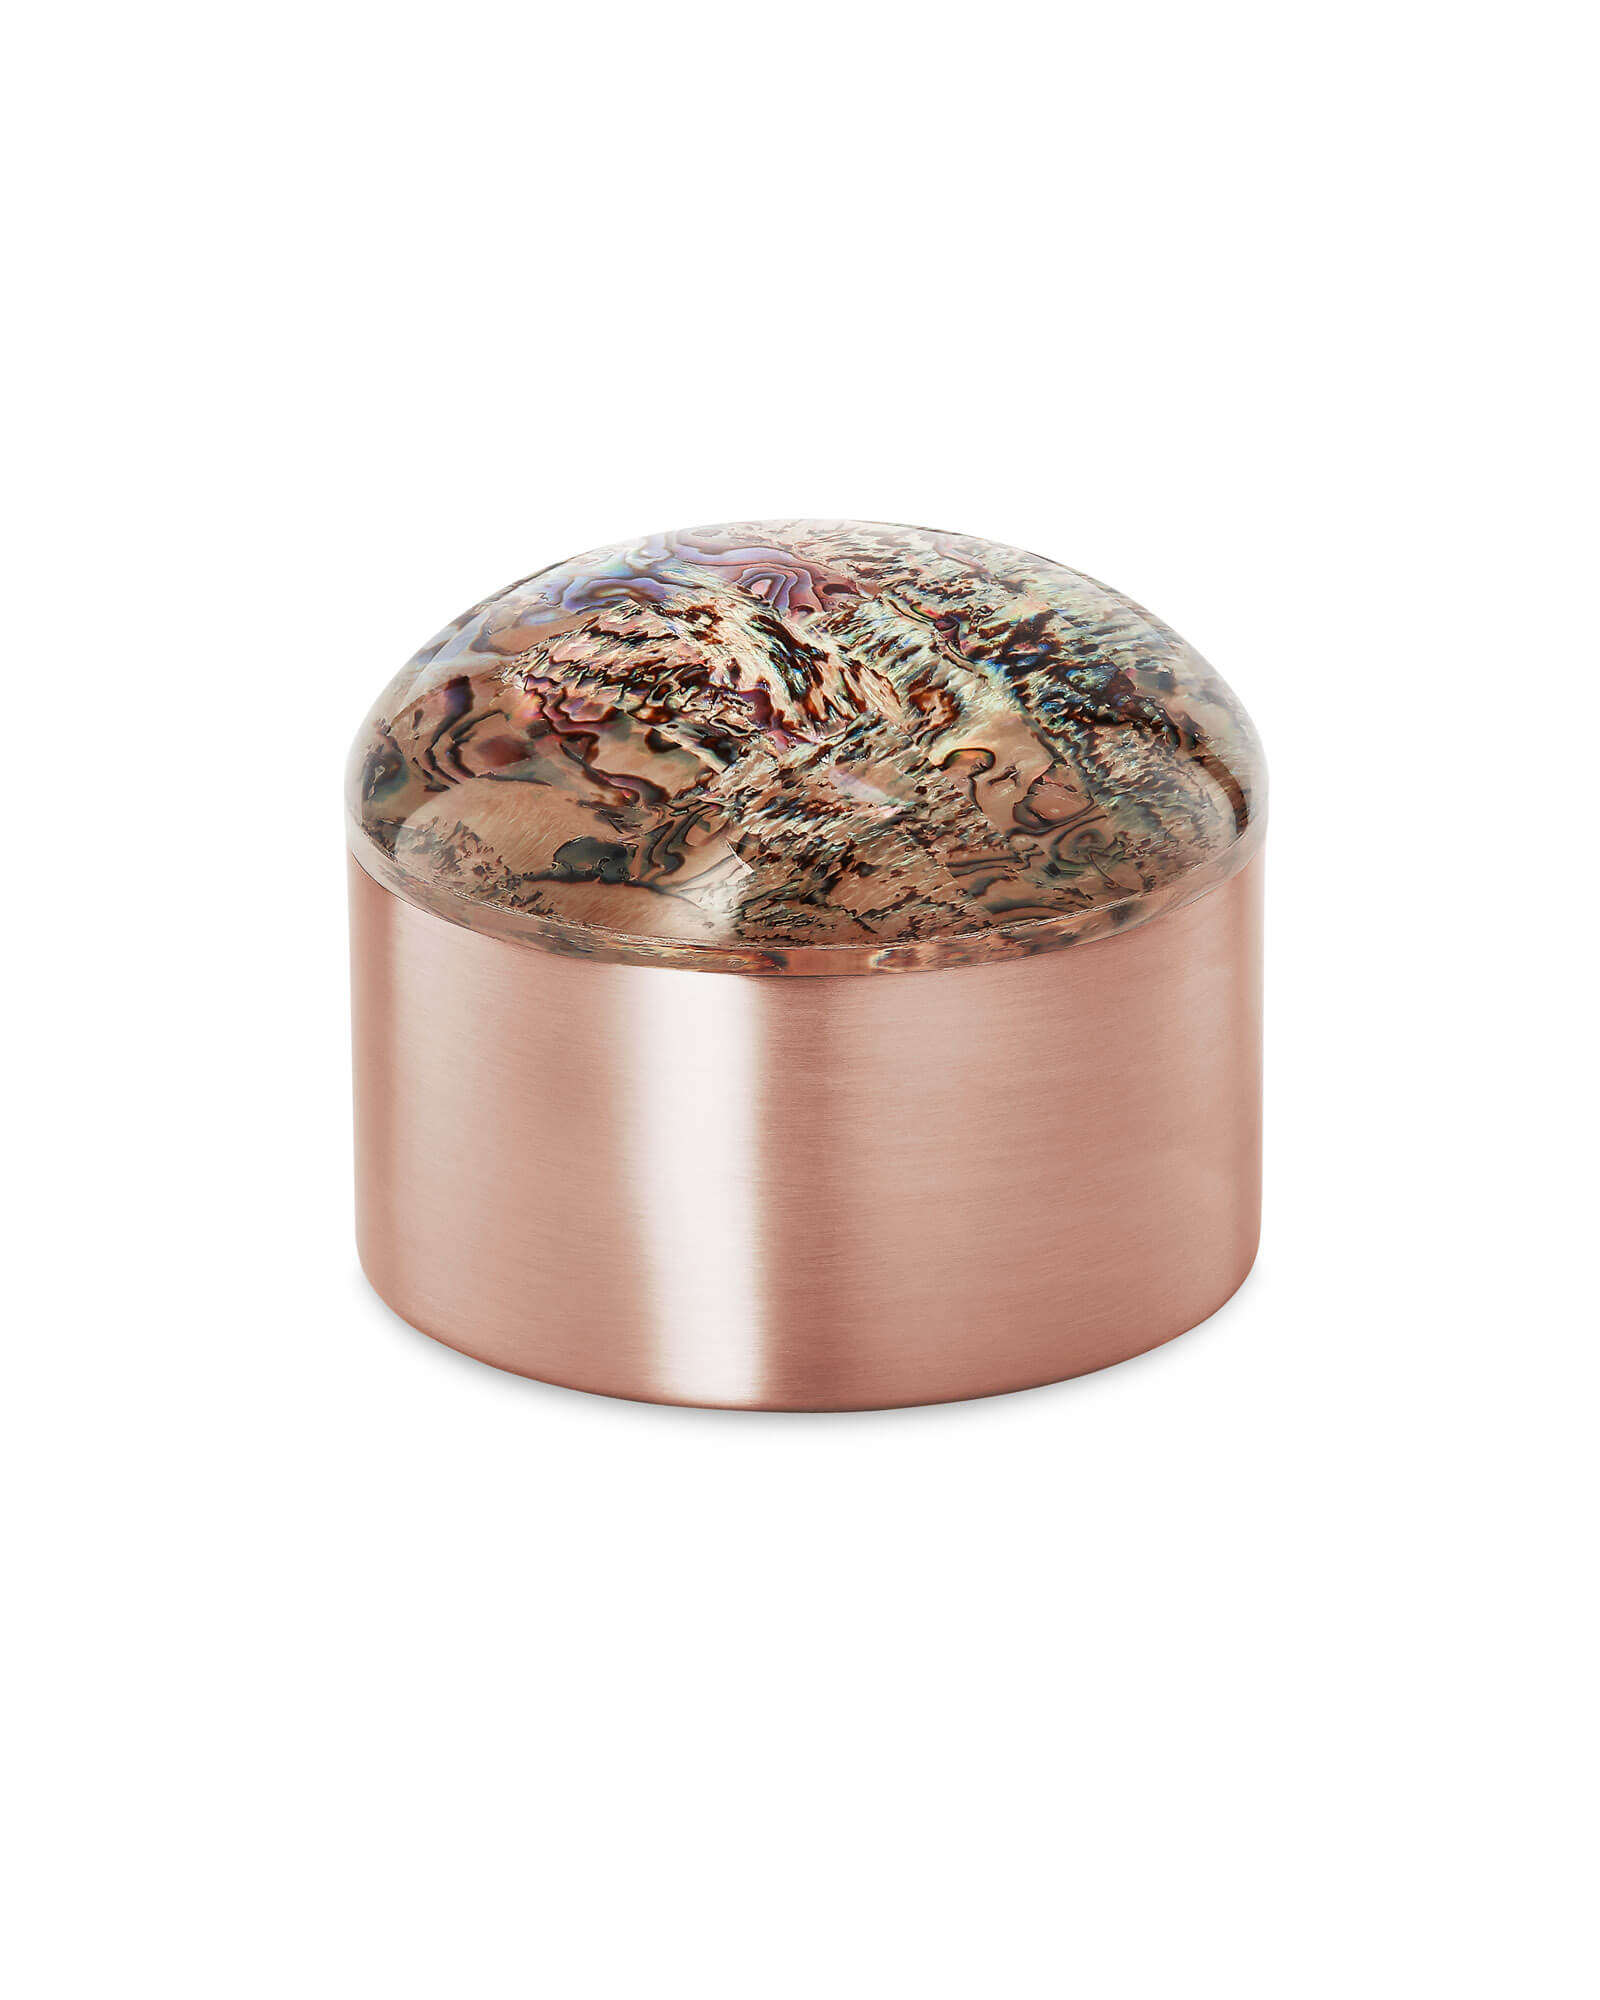 Decorative Rose Gold Dome Box in Abalone Shell